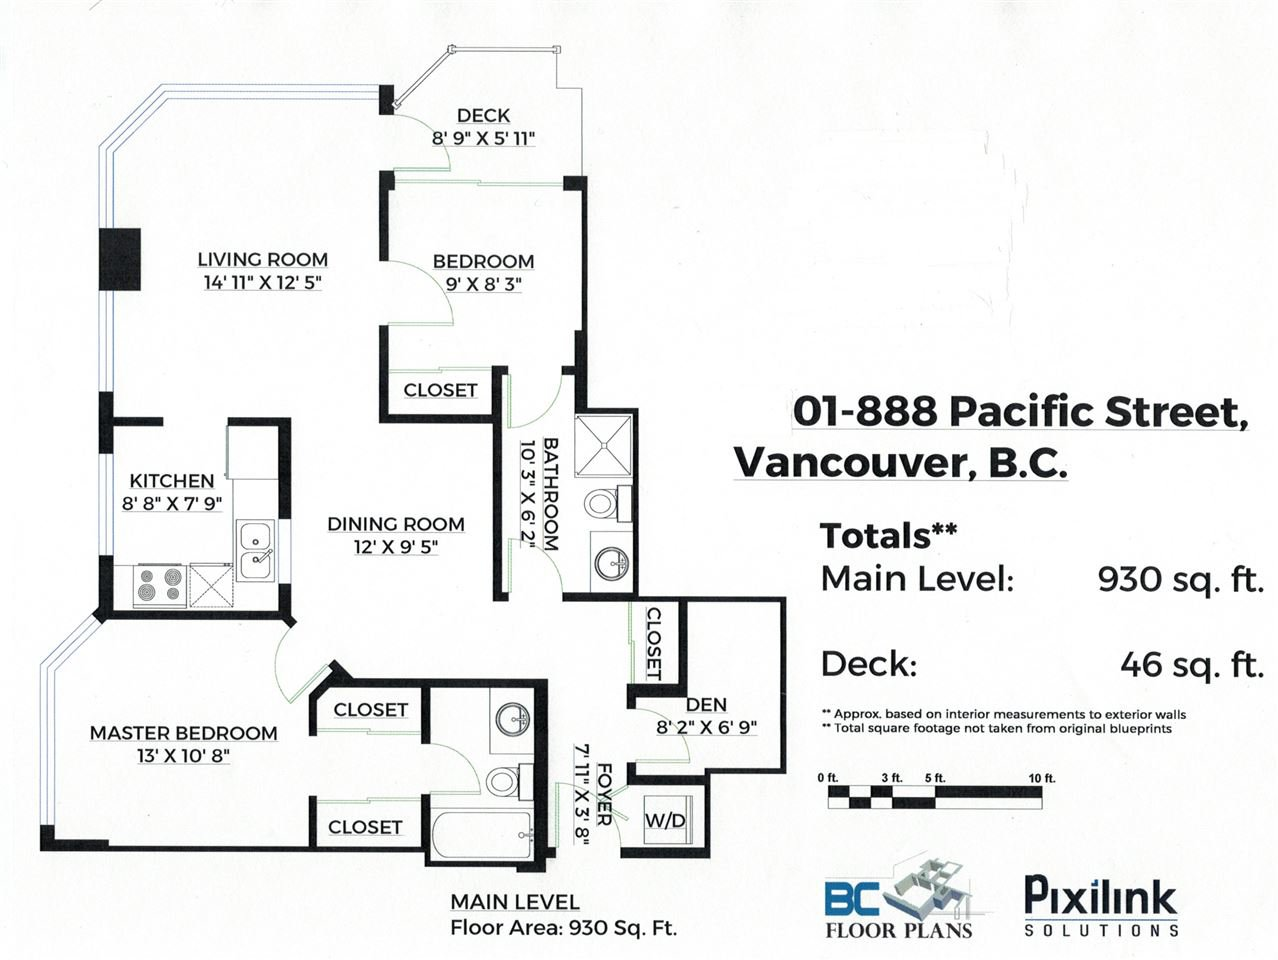 Main Photo: 901 888 PACIFIC STREET in Vancouver: Yaletown Condo for sale (Vancouver West)  : MLS®# R2509472